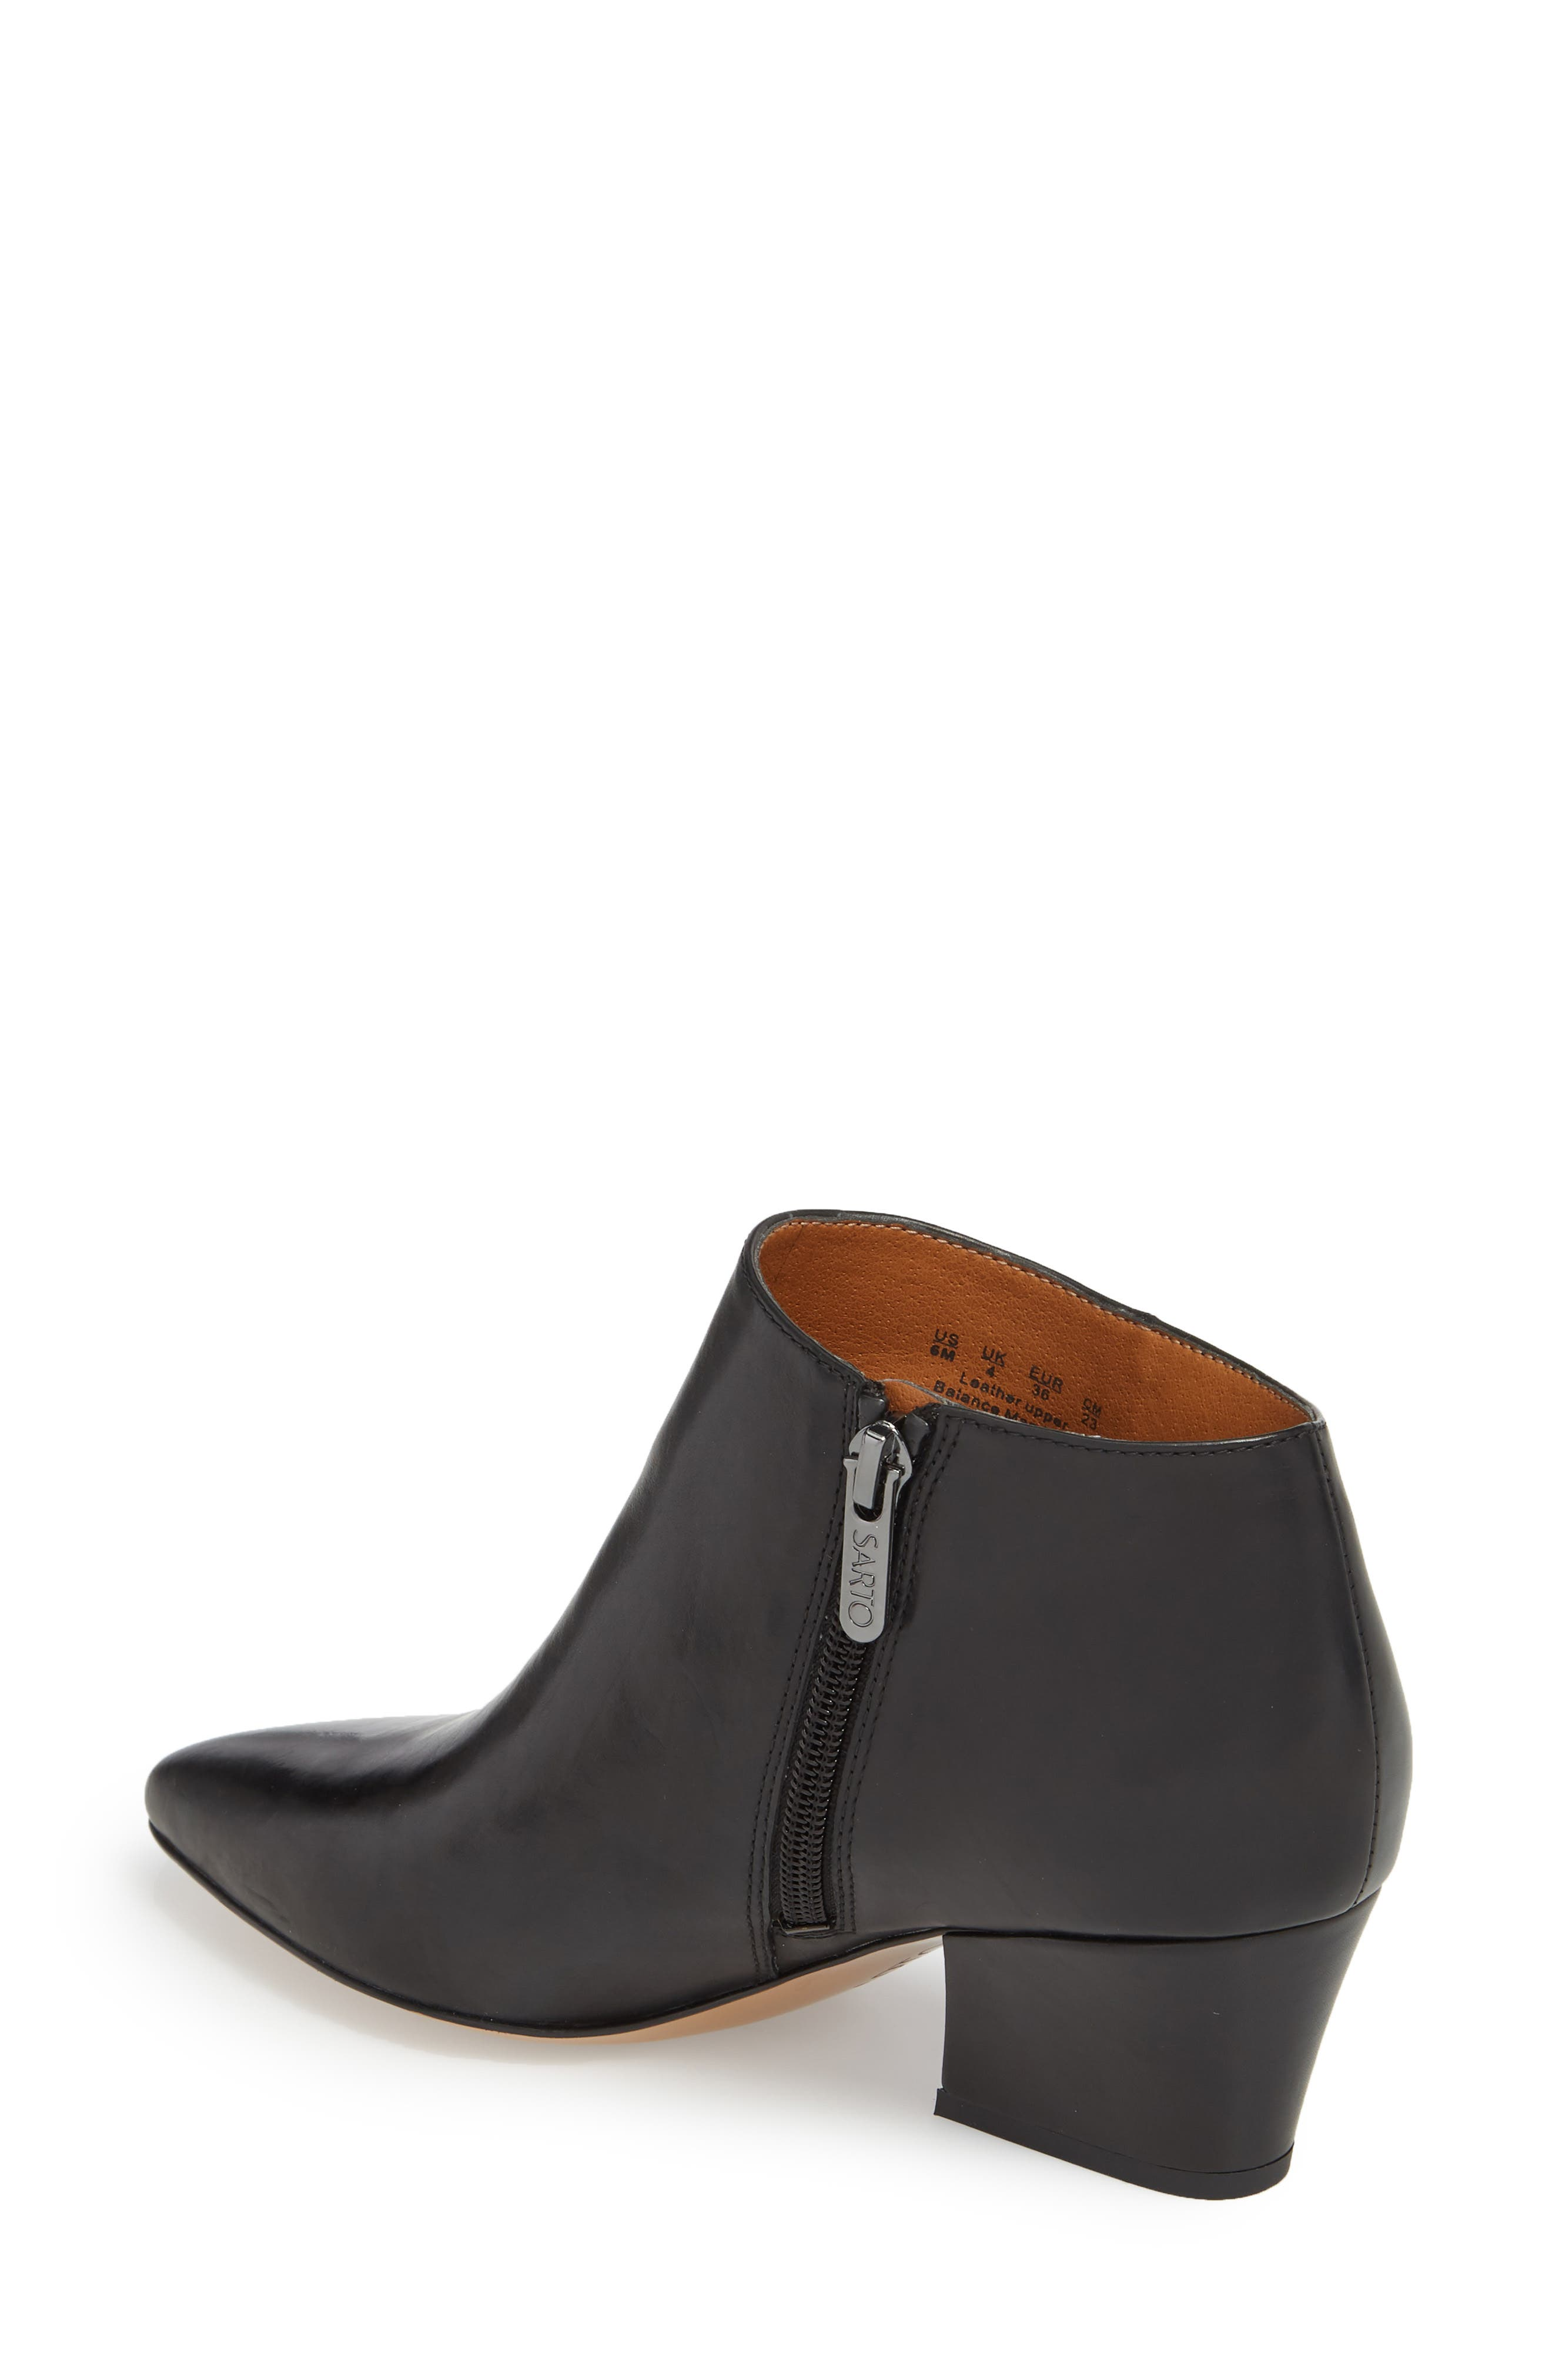 Lowe Bootie,                             Alternate thumbnail 2, color,                             BLACK LEATHER